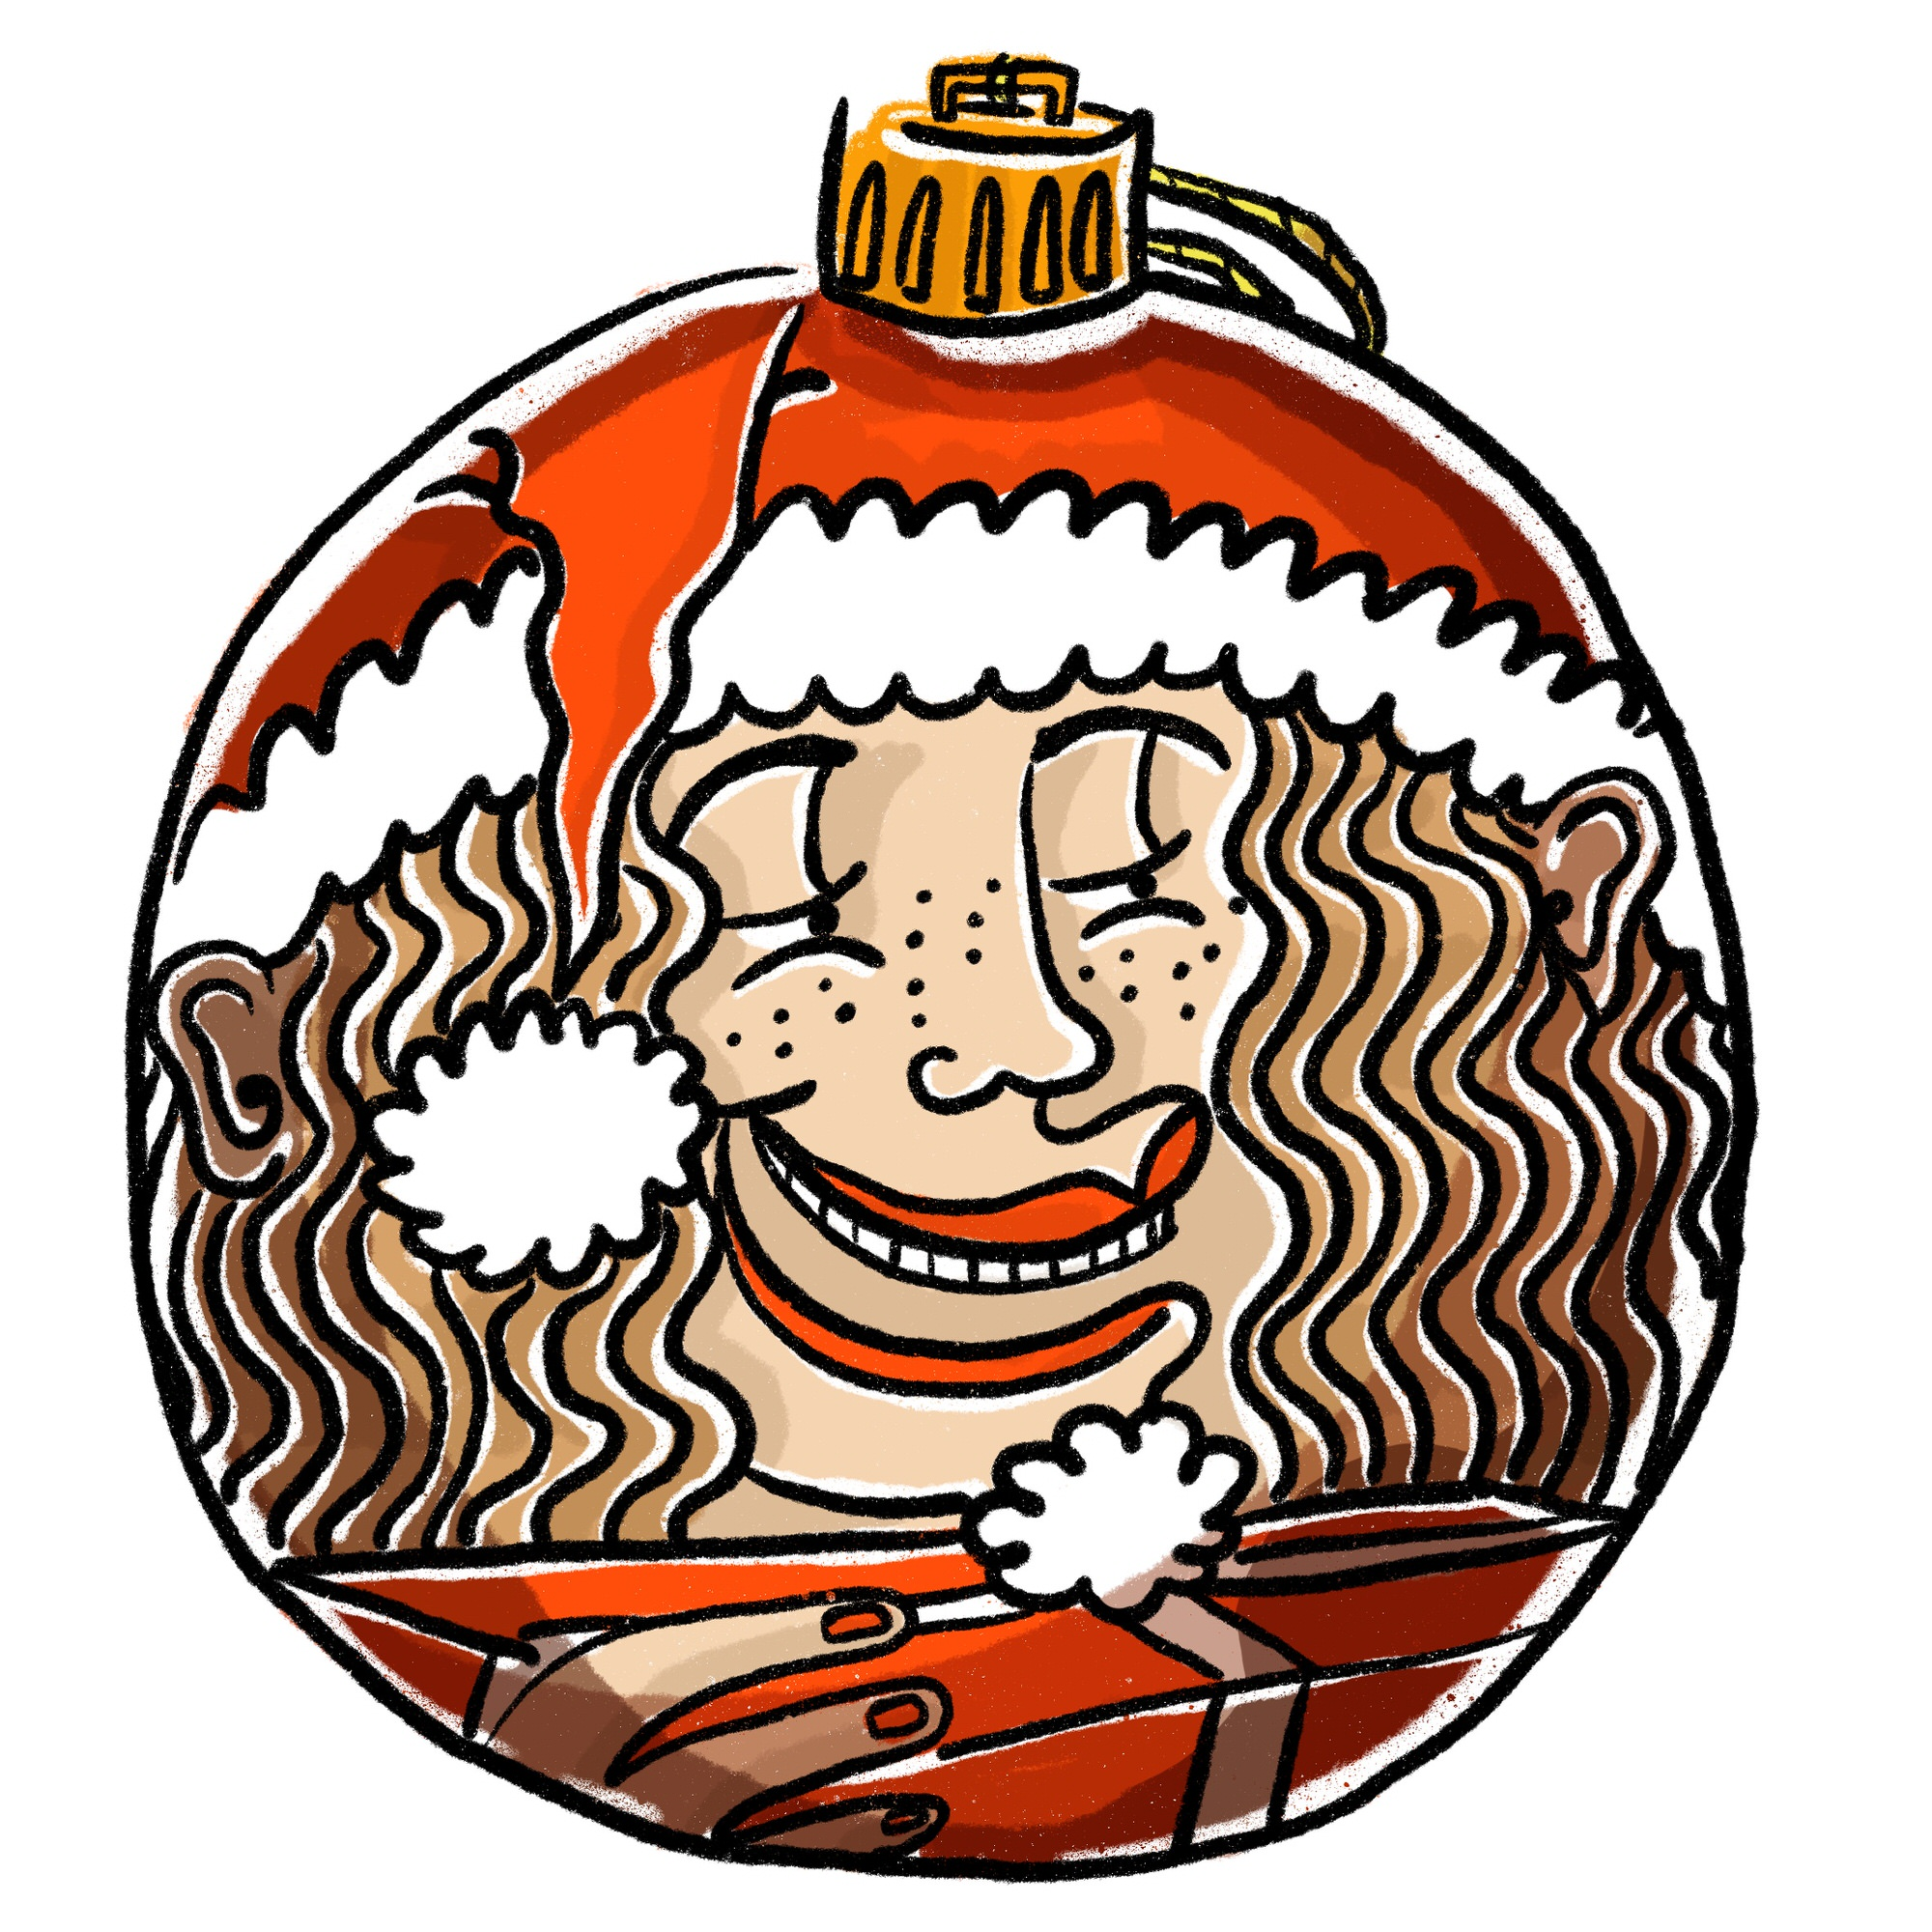 A comic style Christmas bobble reflects Ida grinning holding a large present. The background is white   ©Ida Henrich